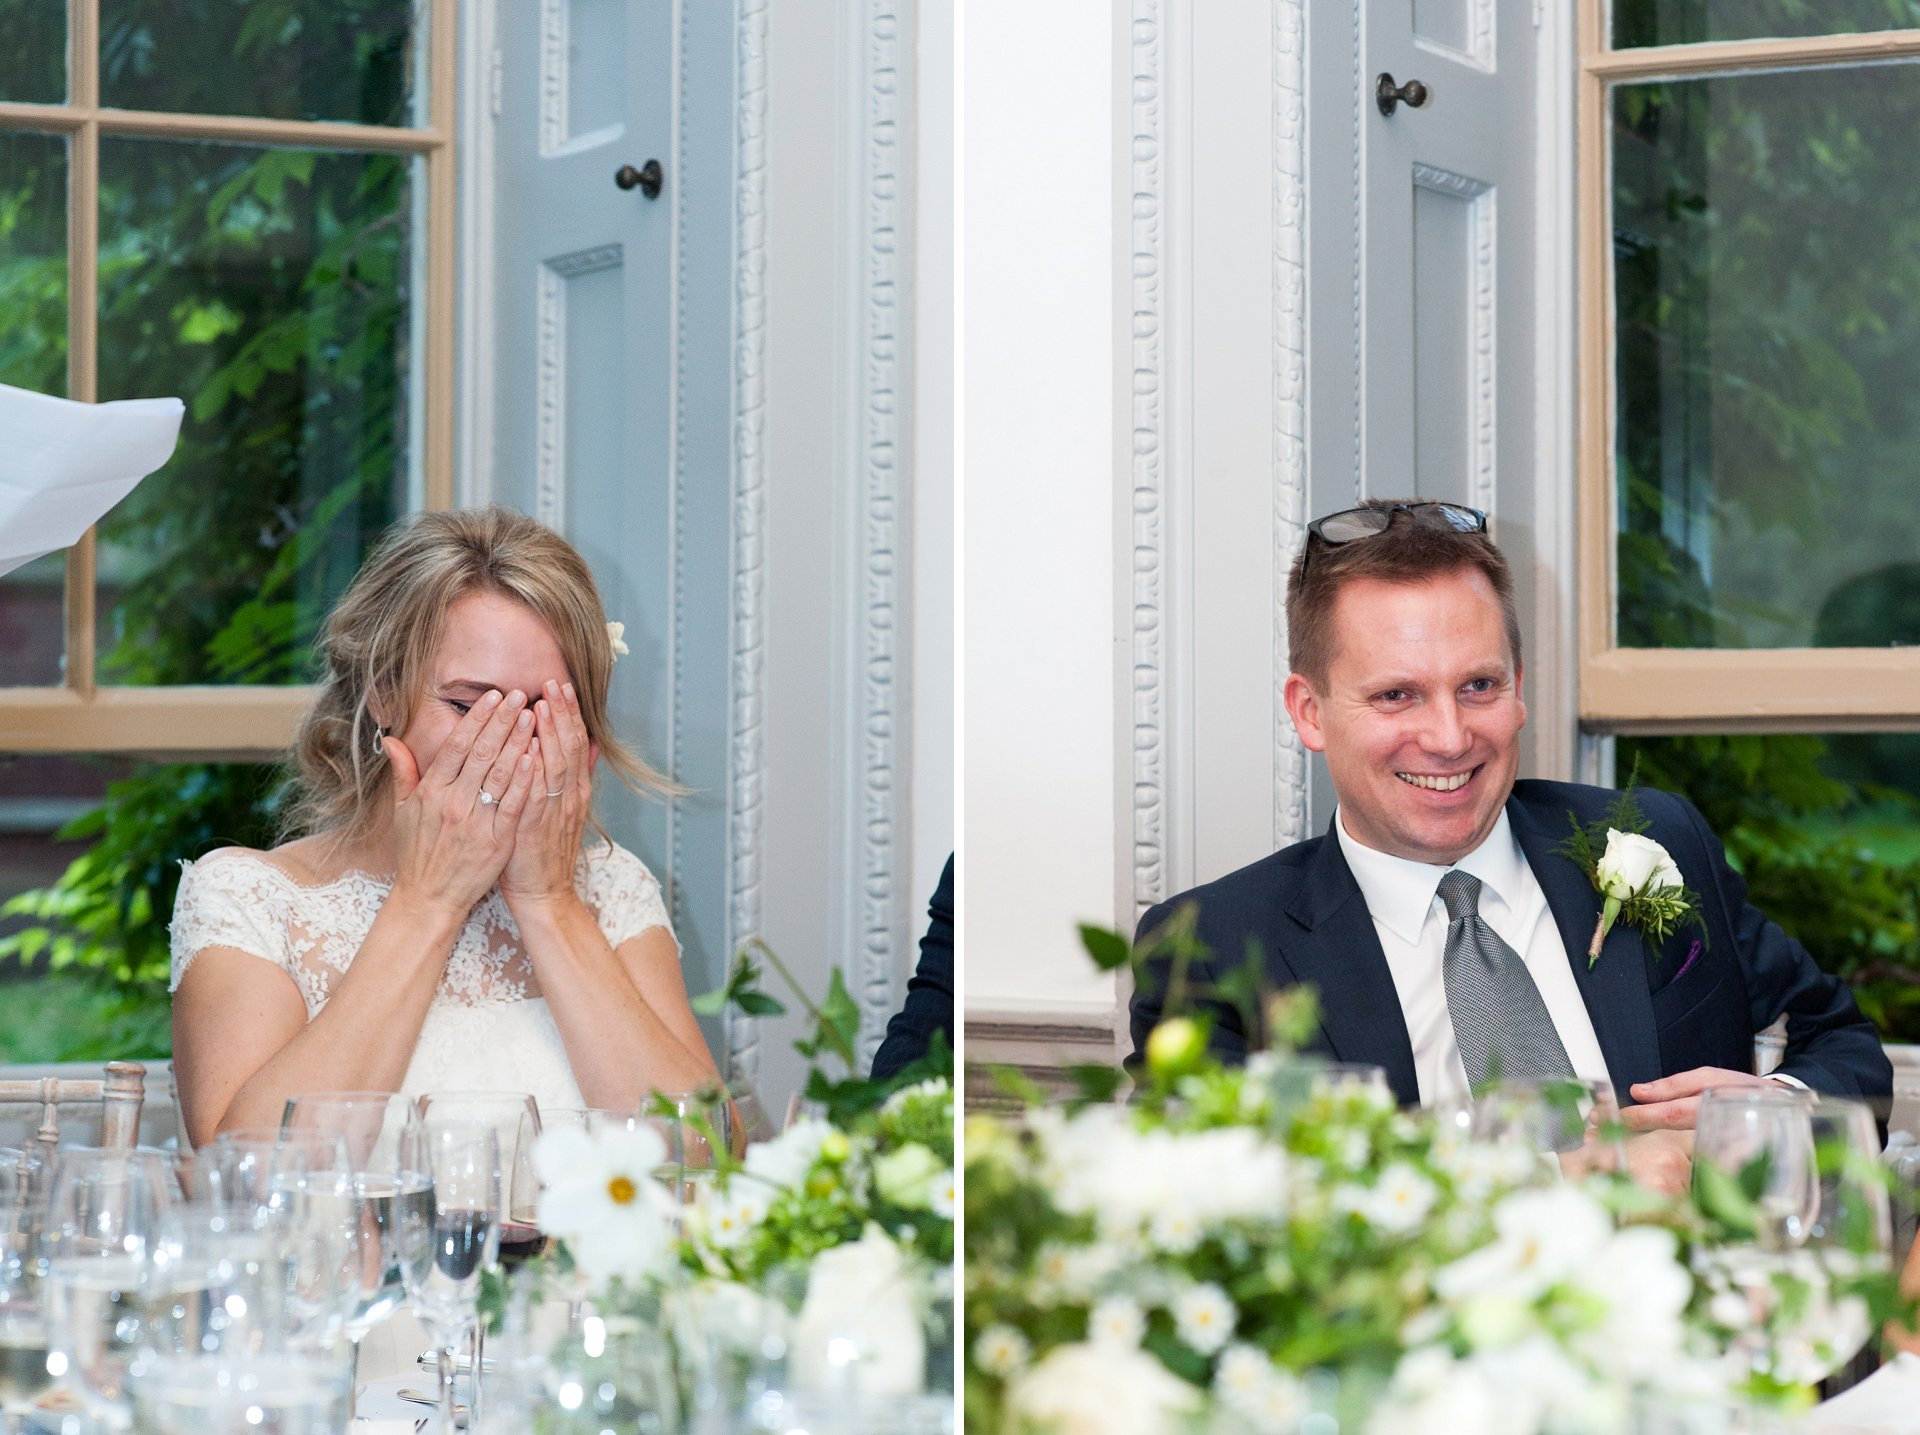 Bride & groom react to best man's wedding speech at Fulham Palce